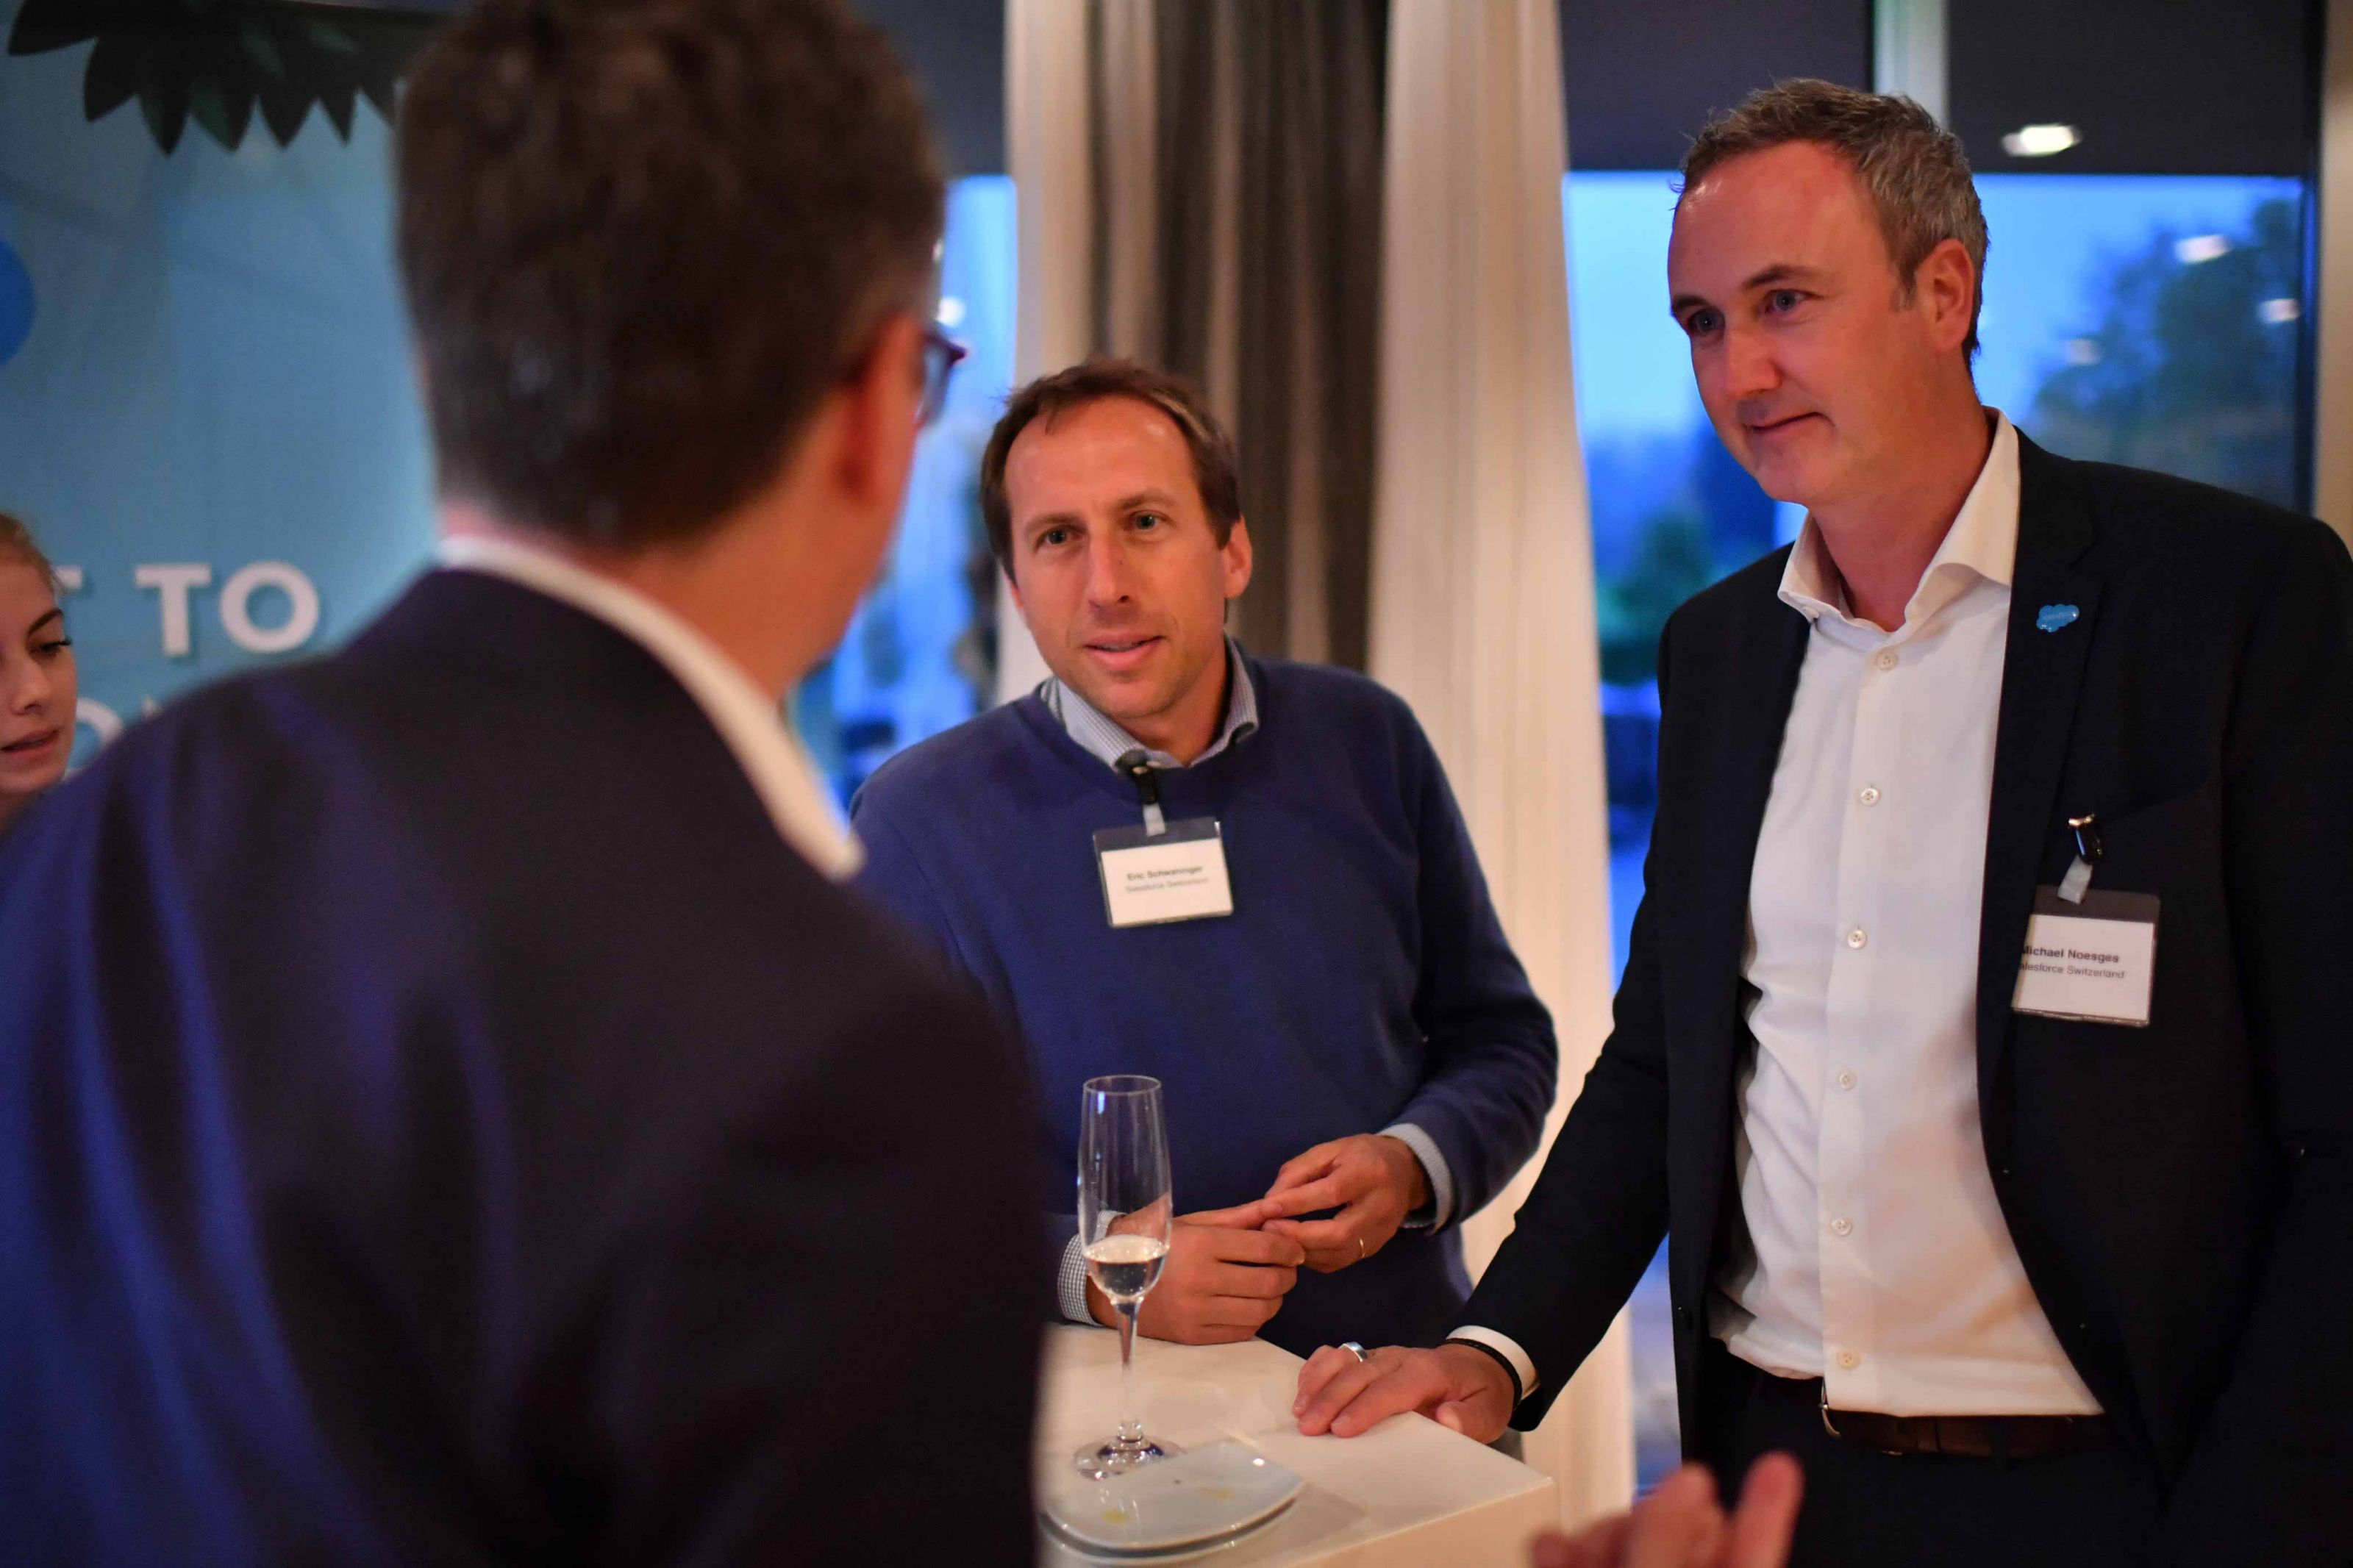 Networking beim Smart Business Day 2019